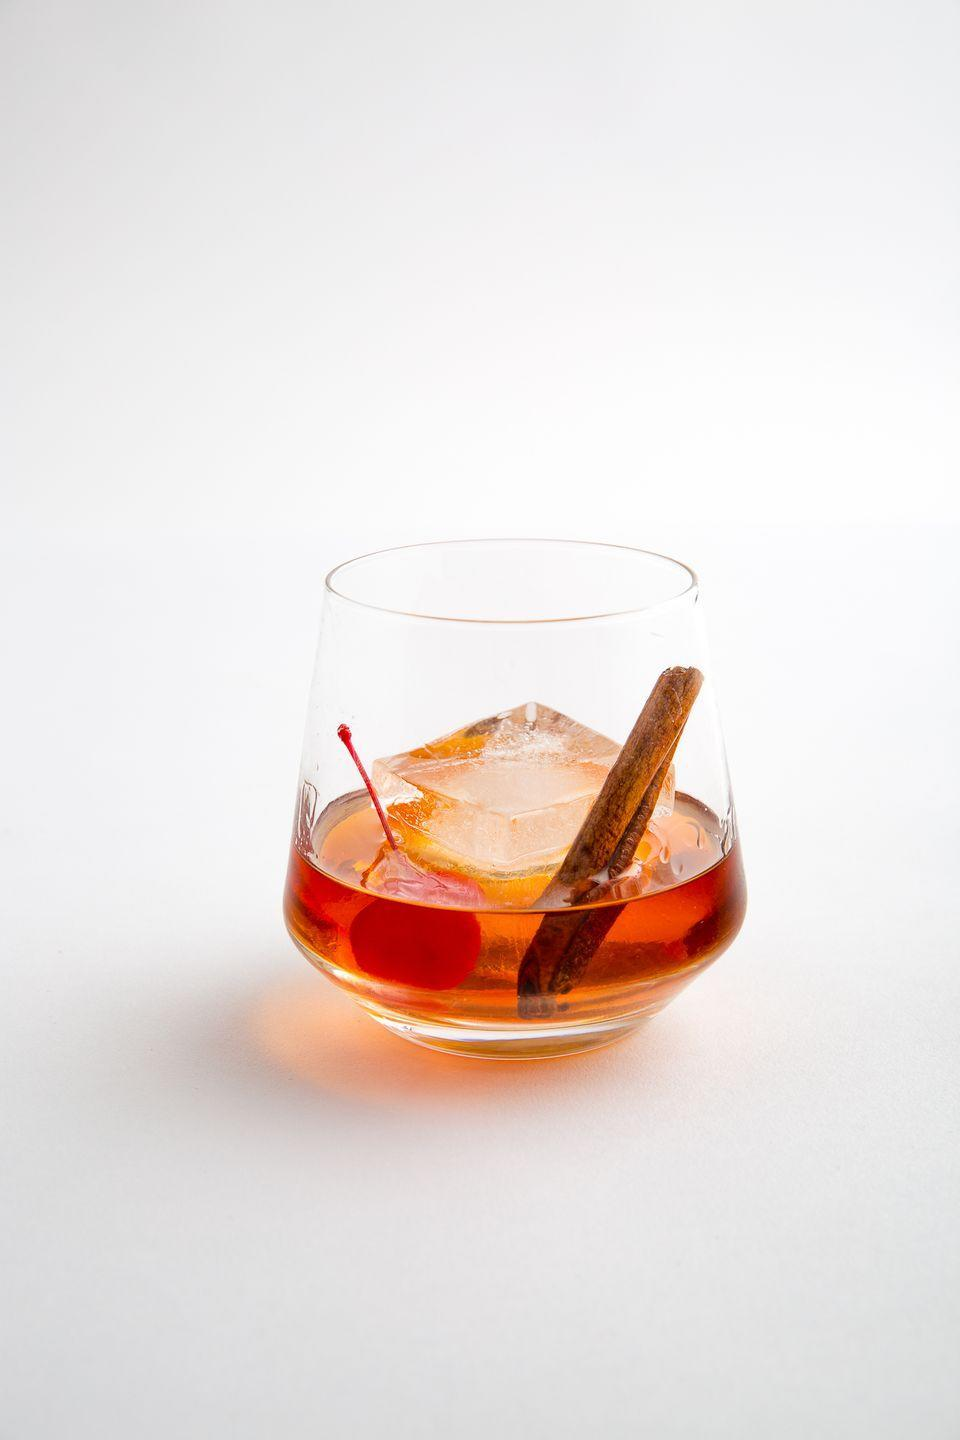 """<p>Try a sweet spin on the classic cocktail.<br></p><p>Get the recipe from <a href=""""https://www.delish.com/cooking/recipe-ideas/recipes/a49745/maple-bourbon-old-fashioned-recipe/"""" rel=""""nofollow noopener"""" target=""""_blank"""" data-ylk=""""slk:Delish"""" class=""""link rapid-noclick-resp"""">Delish</a>.</p>"""